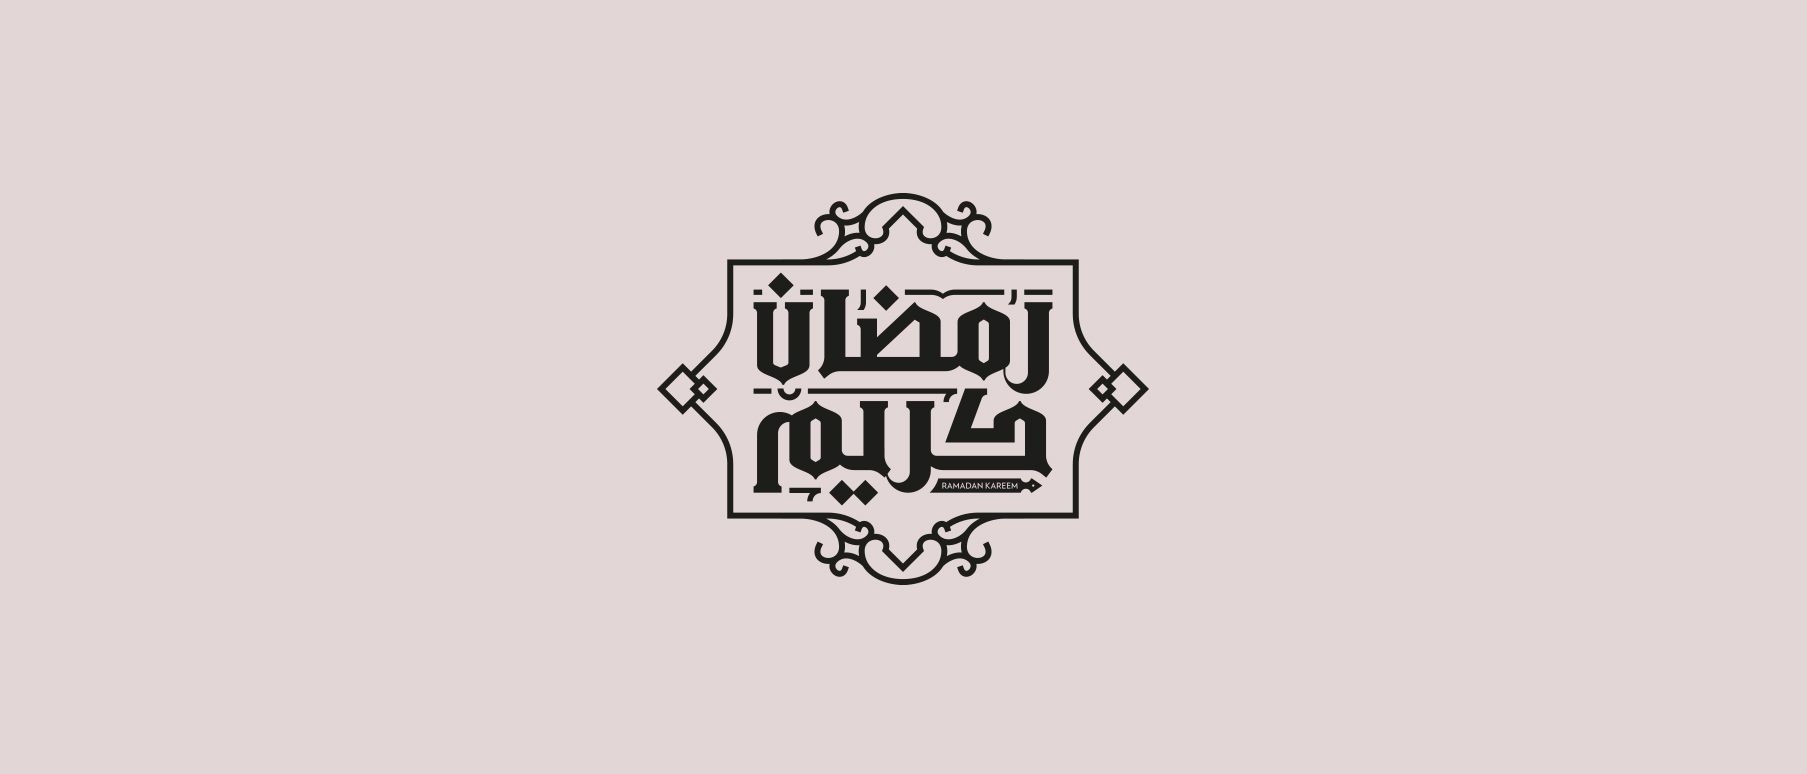 Ramadan Greeting Cards Package Is Stunning New Arabic Typefaces Instead Of Consuming Traditional Used Typo Fo Ramadan Greetings Greeting Card Packaging Ramadan